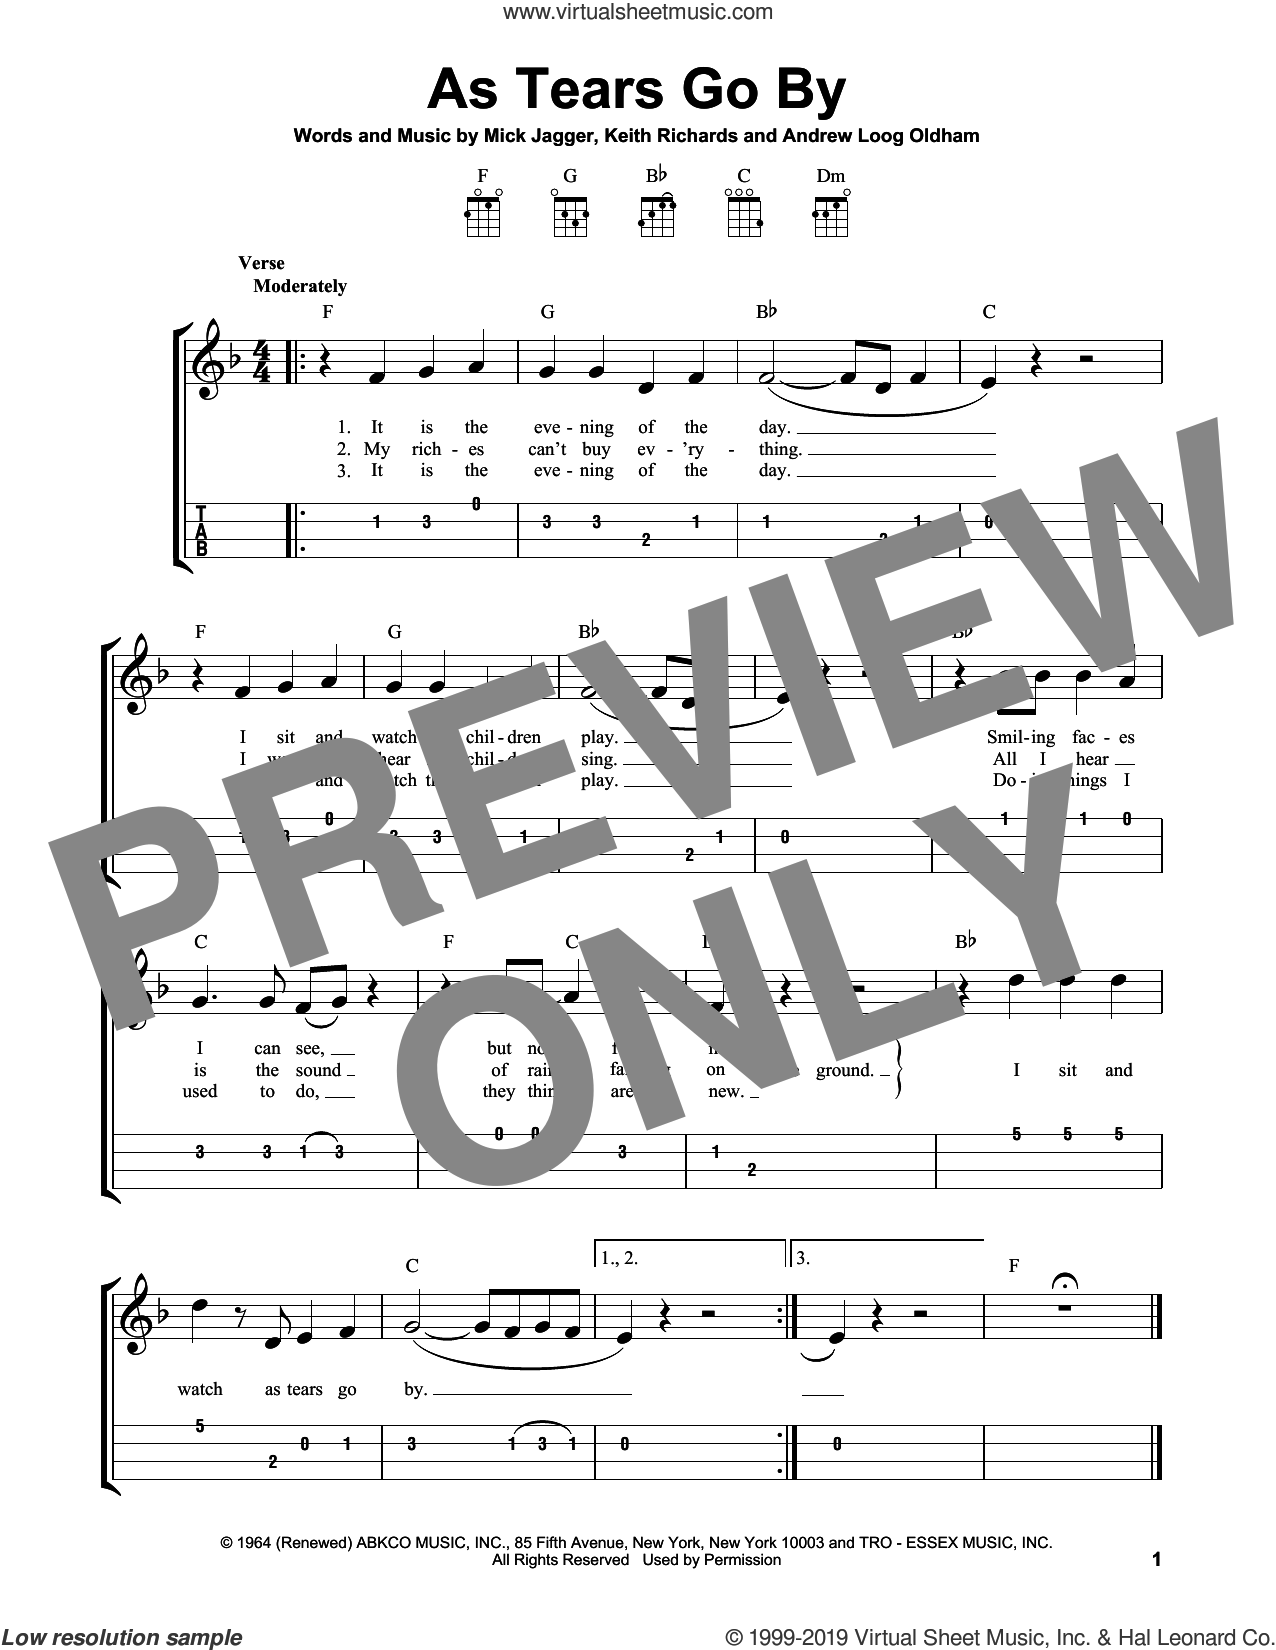 As Tears Go By sheet music for ukulele by The Rolling Stones, Andrew Loog Oldham, Keith Richards and Mick Jagger, intermediate skill level